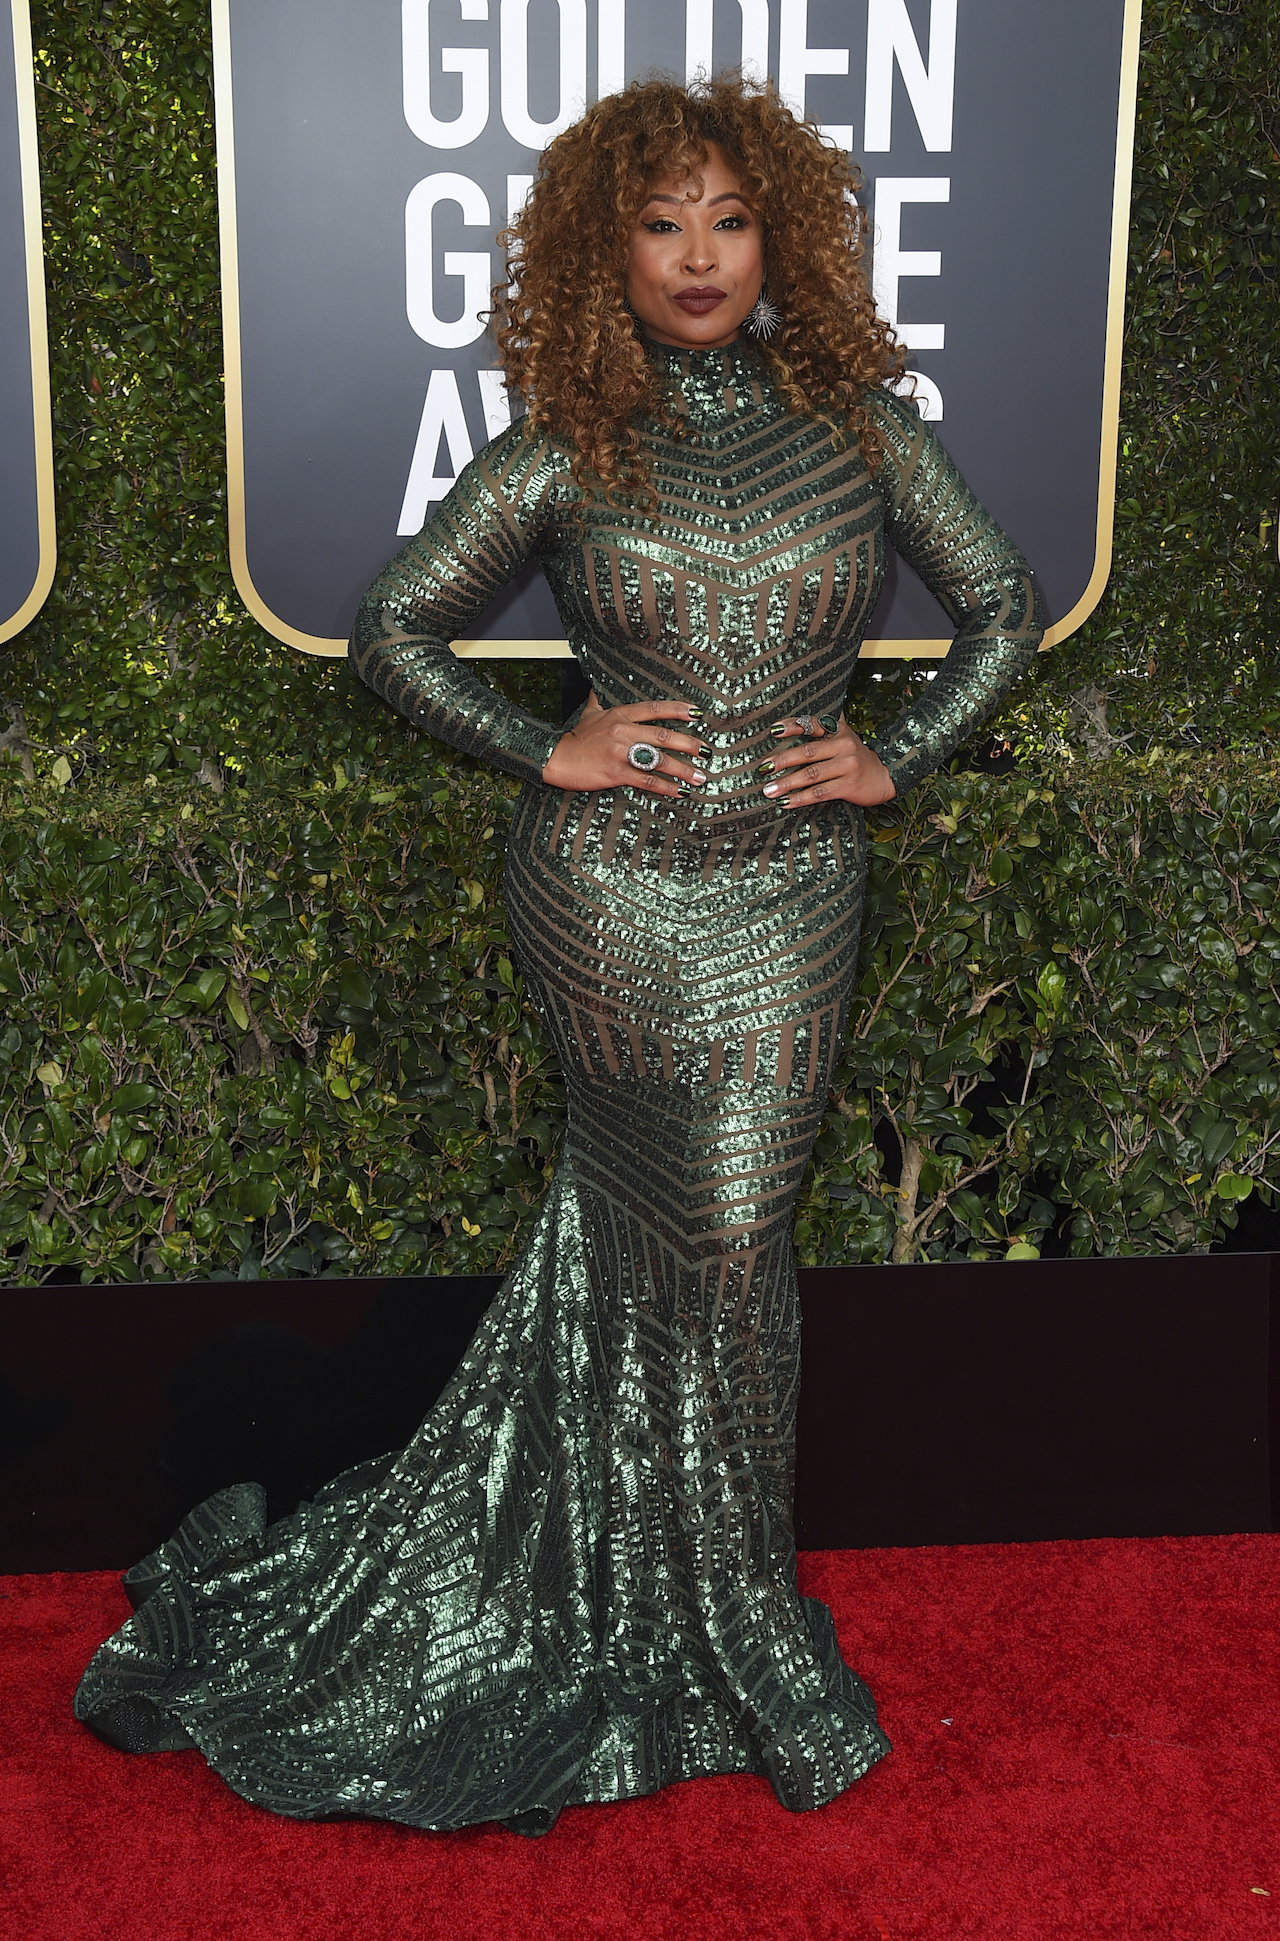 "<div class=""meta image-caption""><div class=""origin-logo origin-image ap""><span>AP</span></div><span class=""caption-text"">Tanika Ray arrives at the 76th annual Golden Globe Awards at the Beverly Hilton Hotel on Sunday, Jan. 6, 2019, in Beverly Hills, Calif. (Jordan Strauss/Invision/AP)</span></div>"